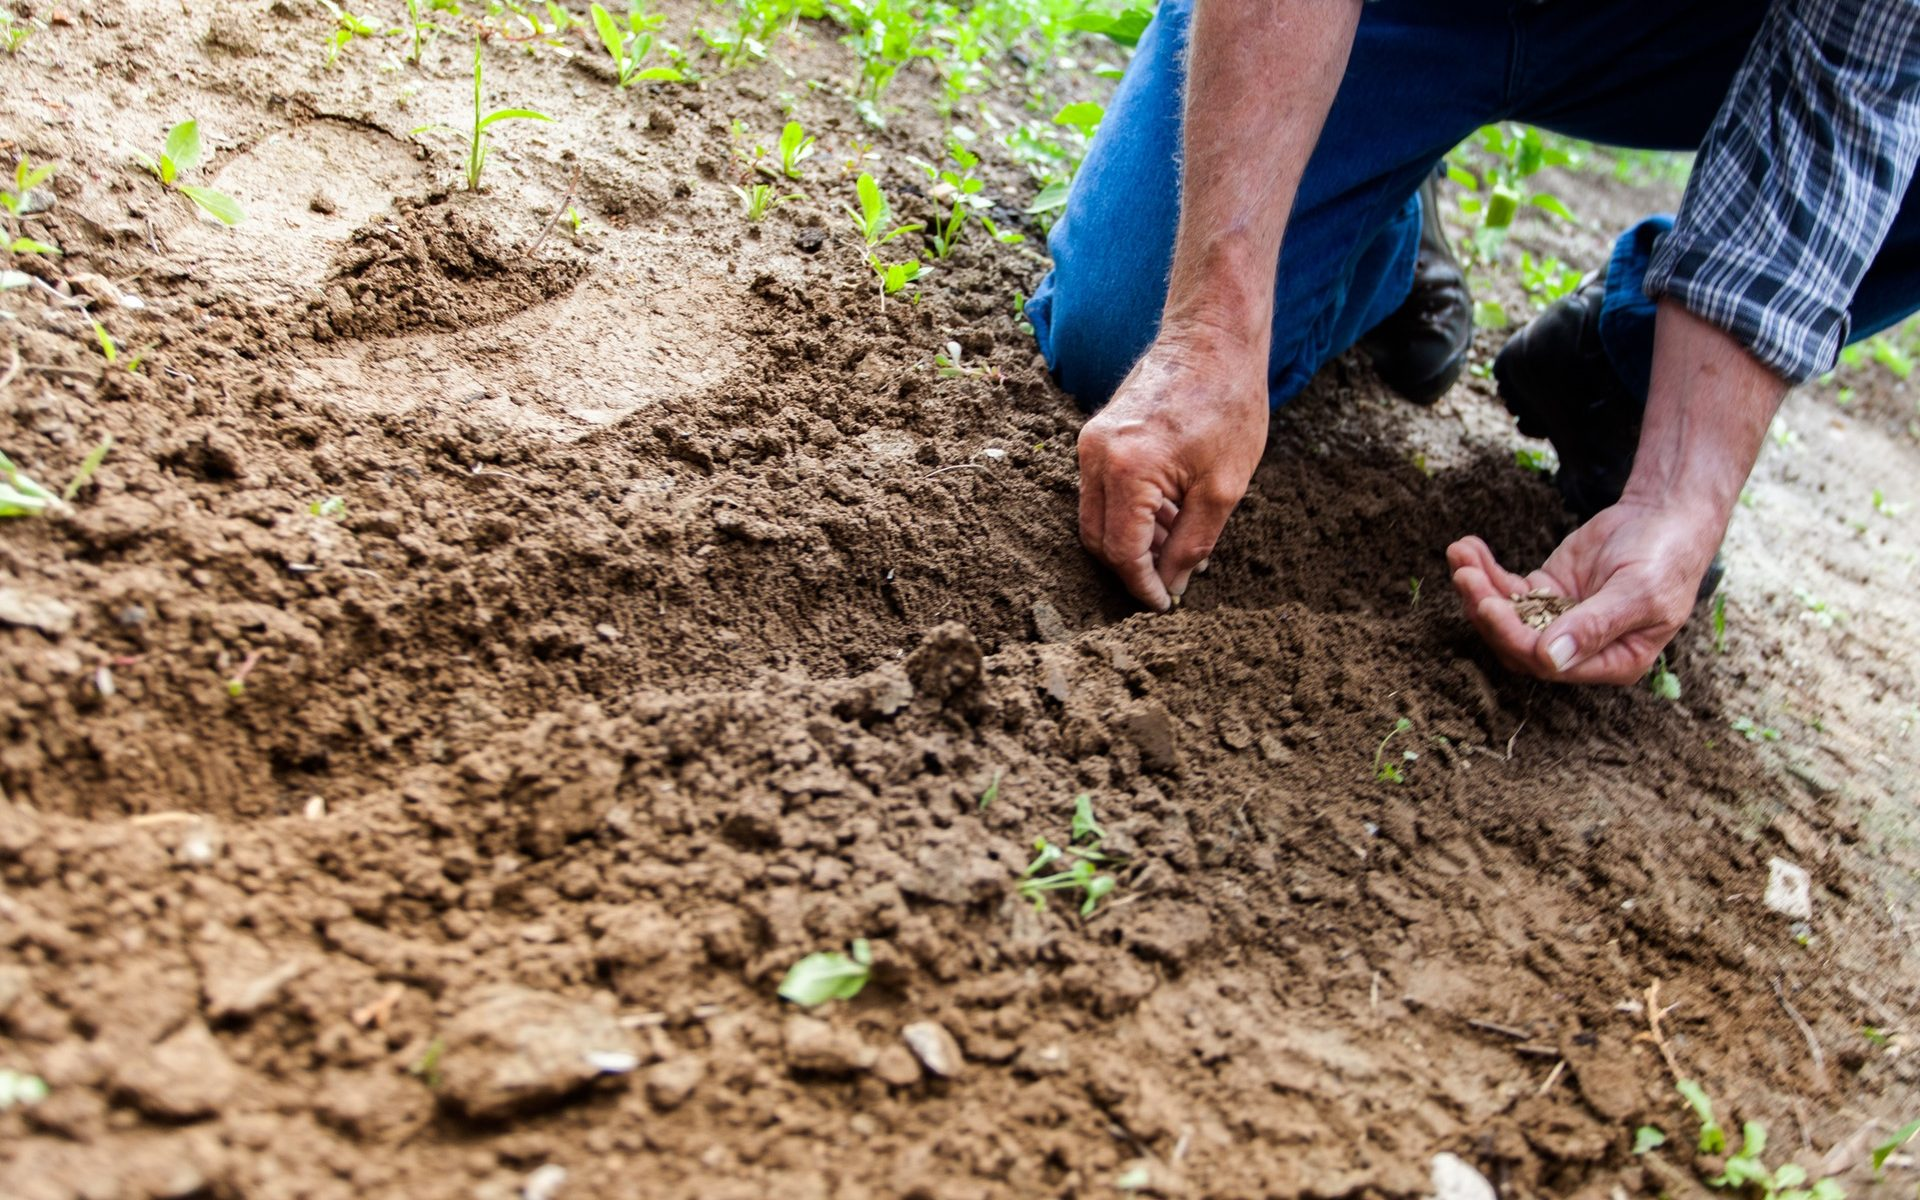 A man planting seed in the soil.